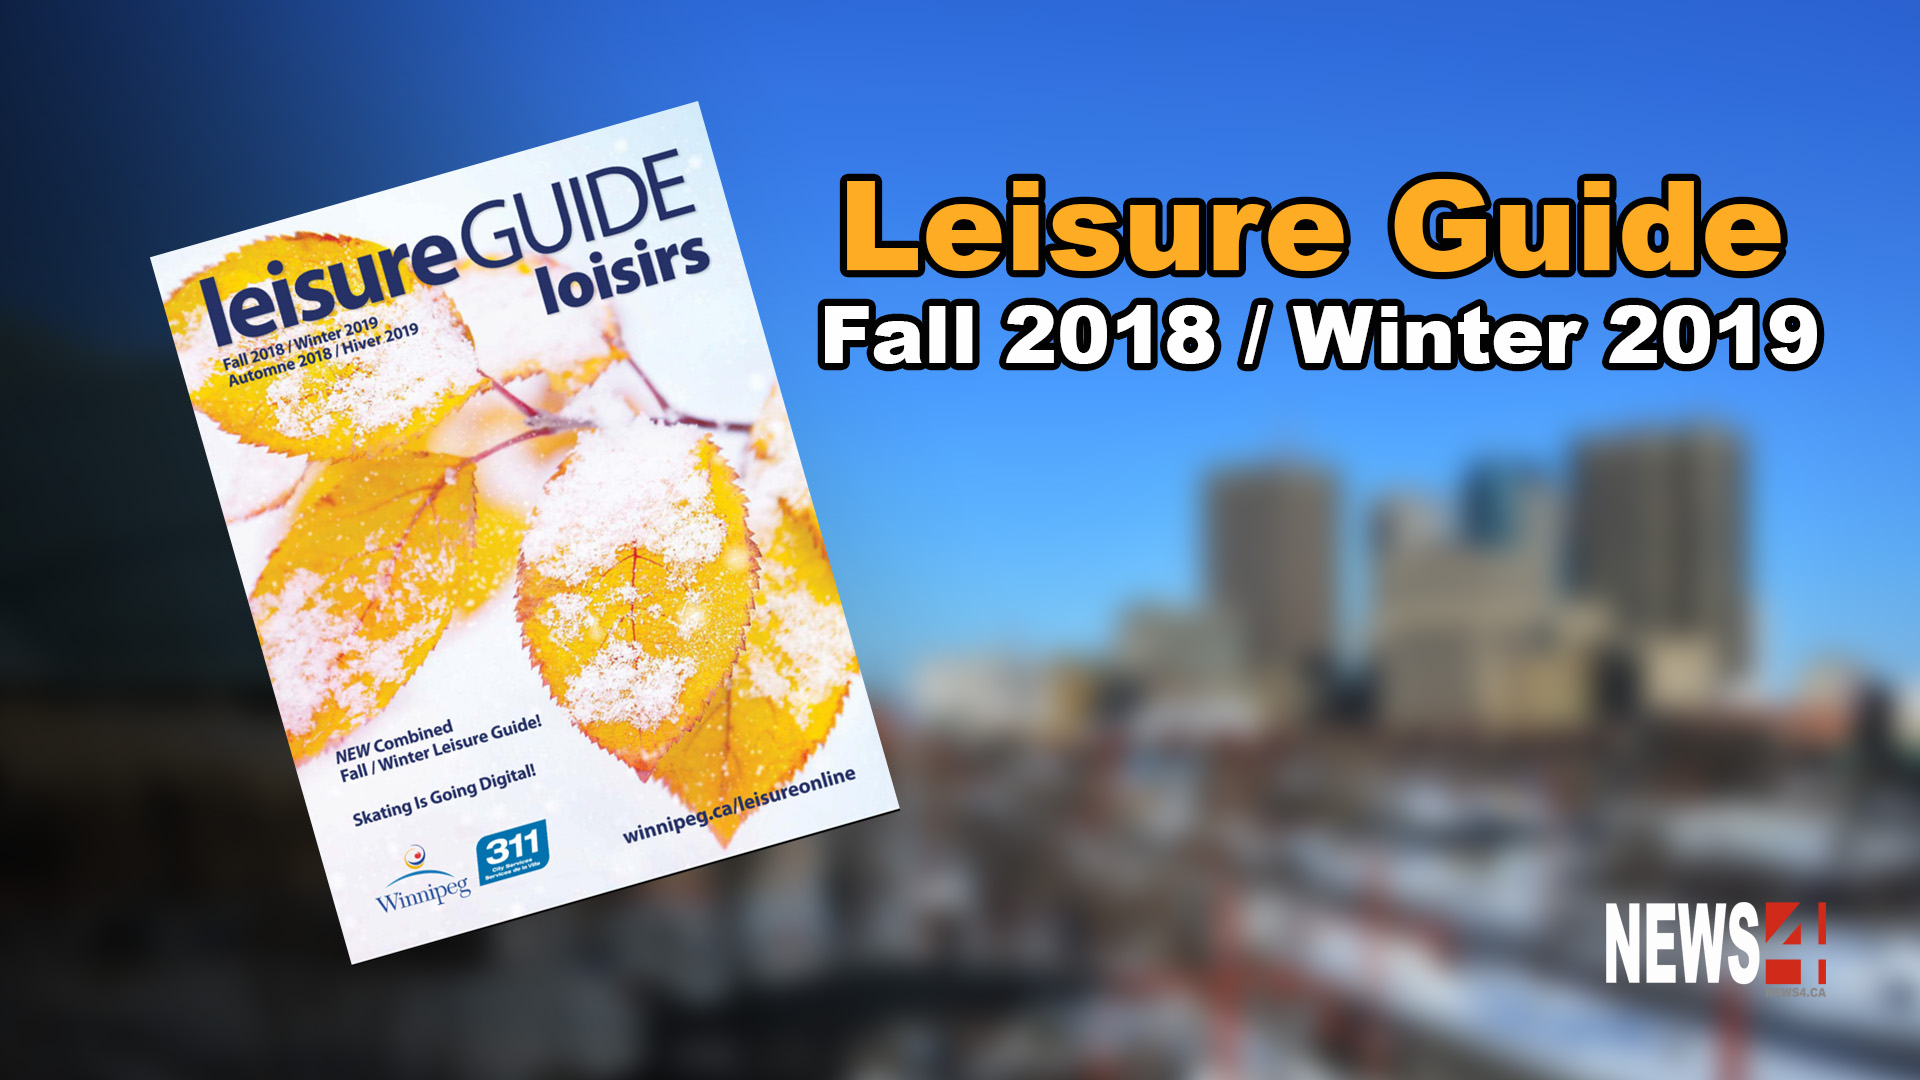 New fall leisure guide released - Winnipeg Free Press